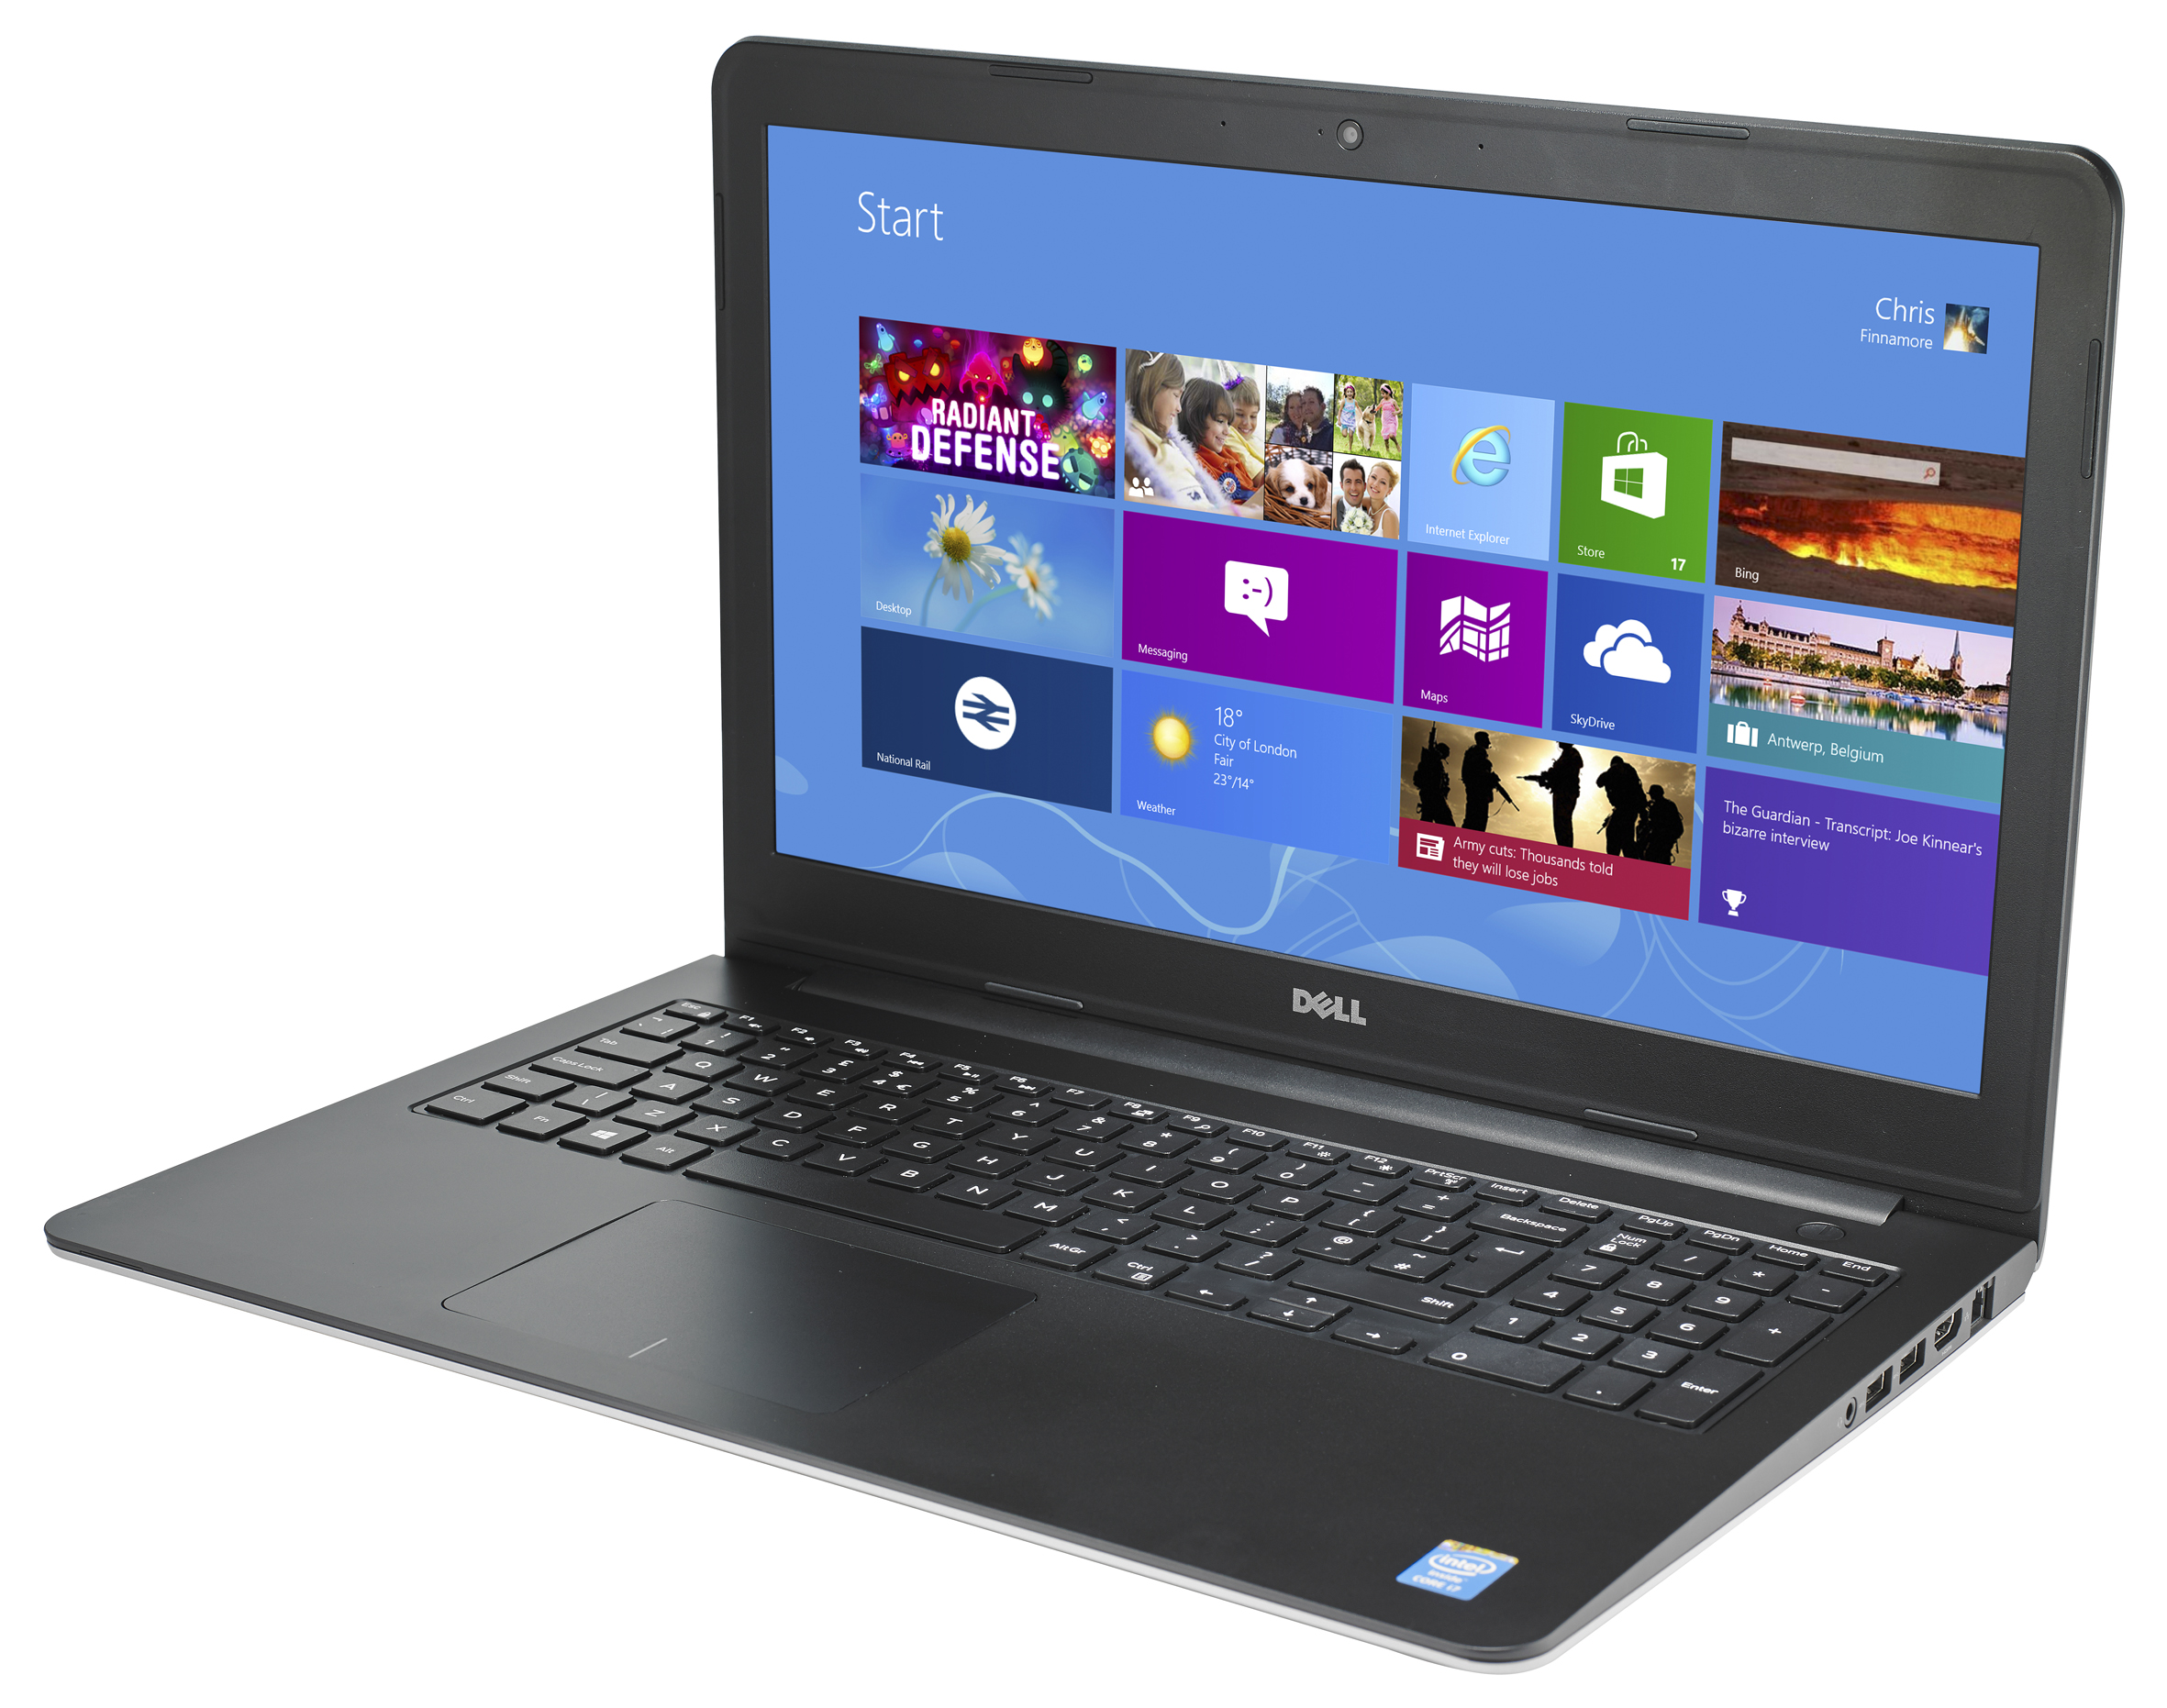 Dell Inspiron 5000 I5547-7450SLV Review